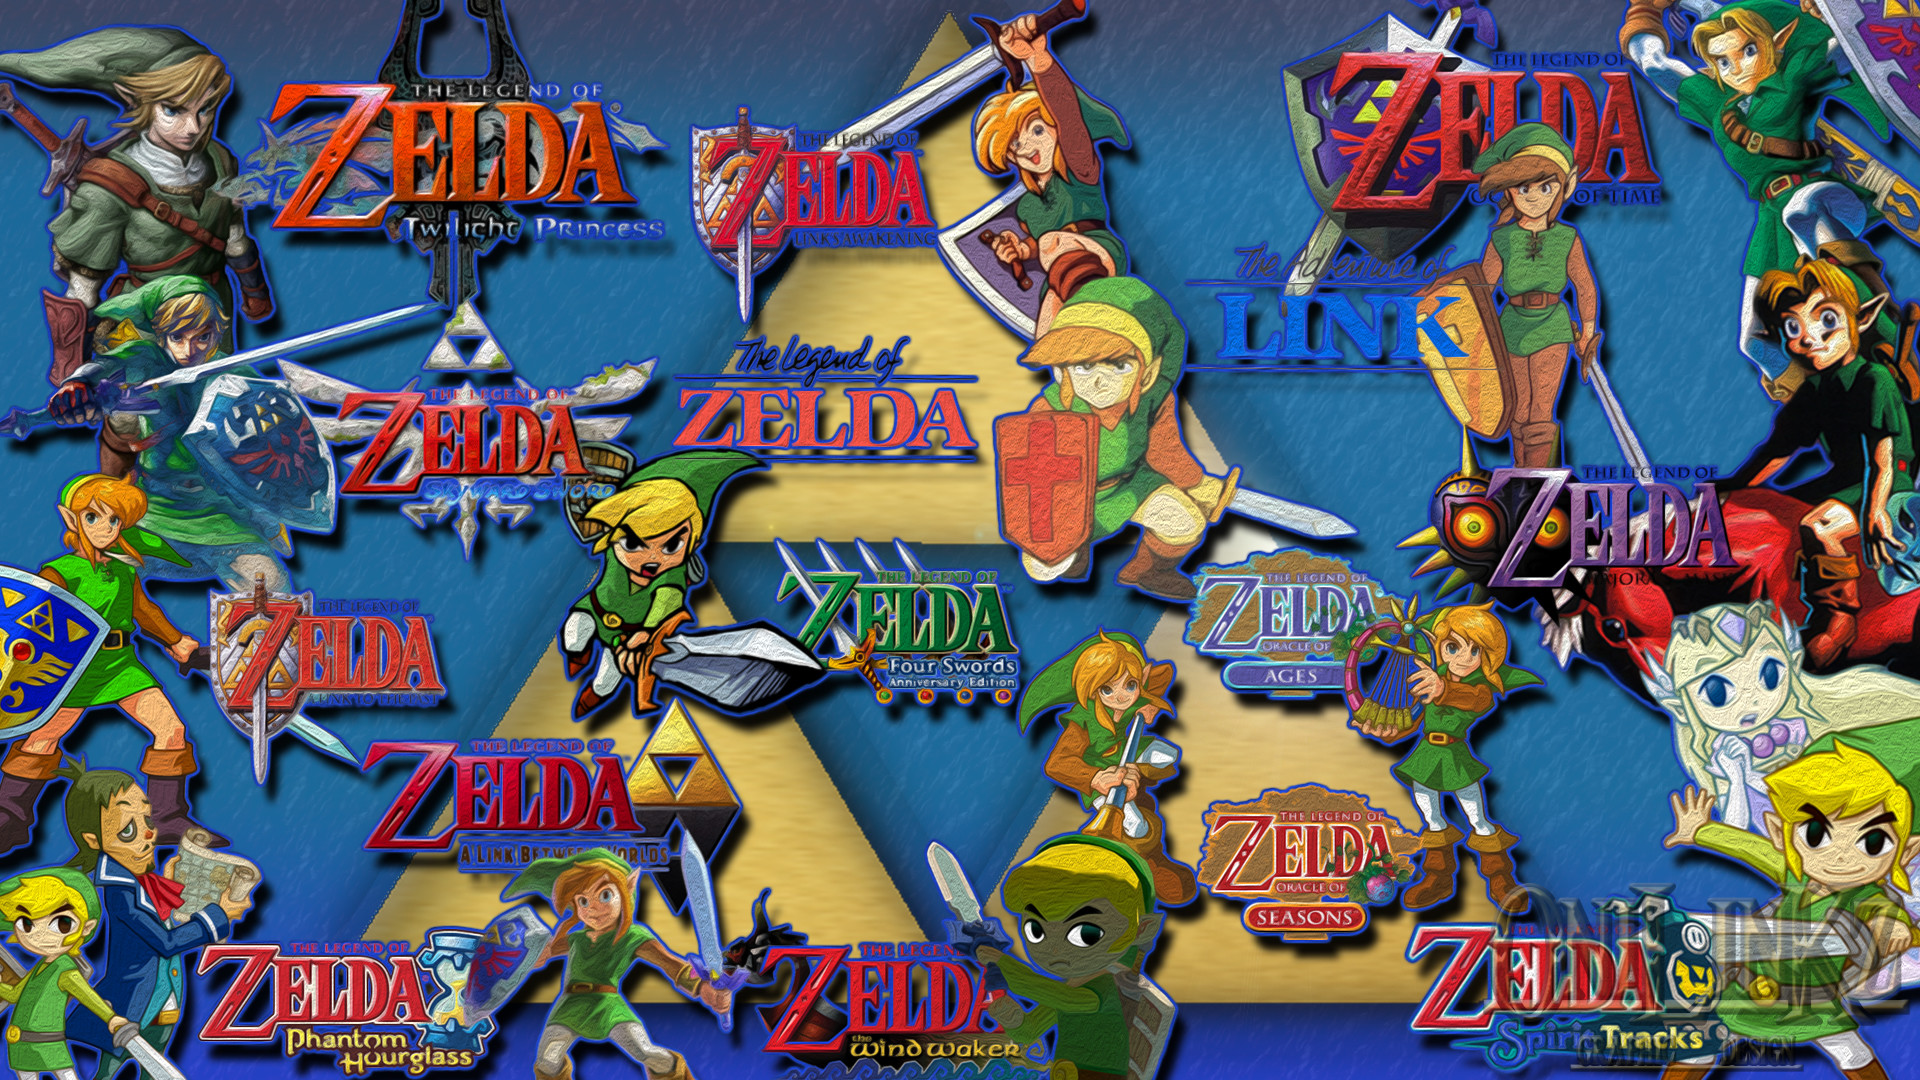 76 Legend Of Zelda Wallpaper 1080p